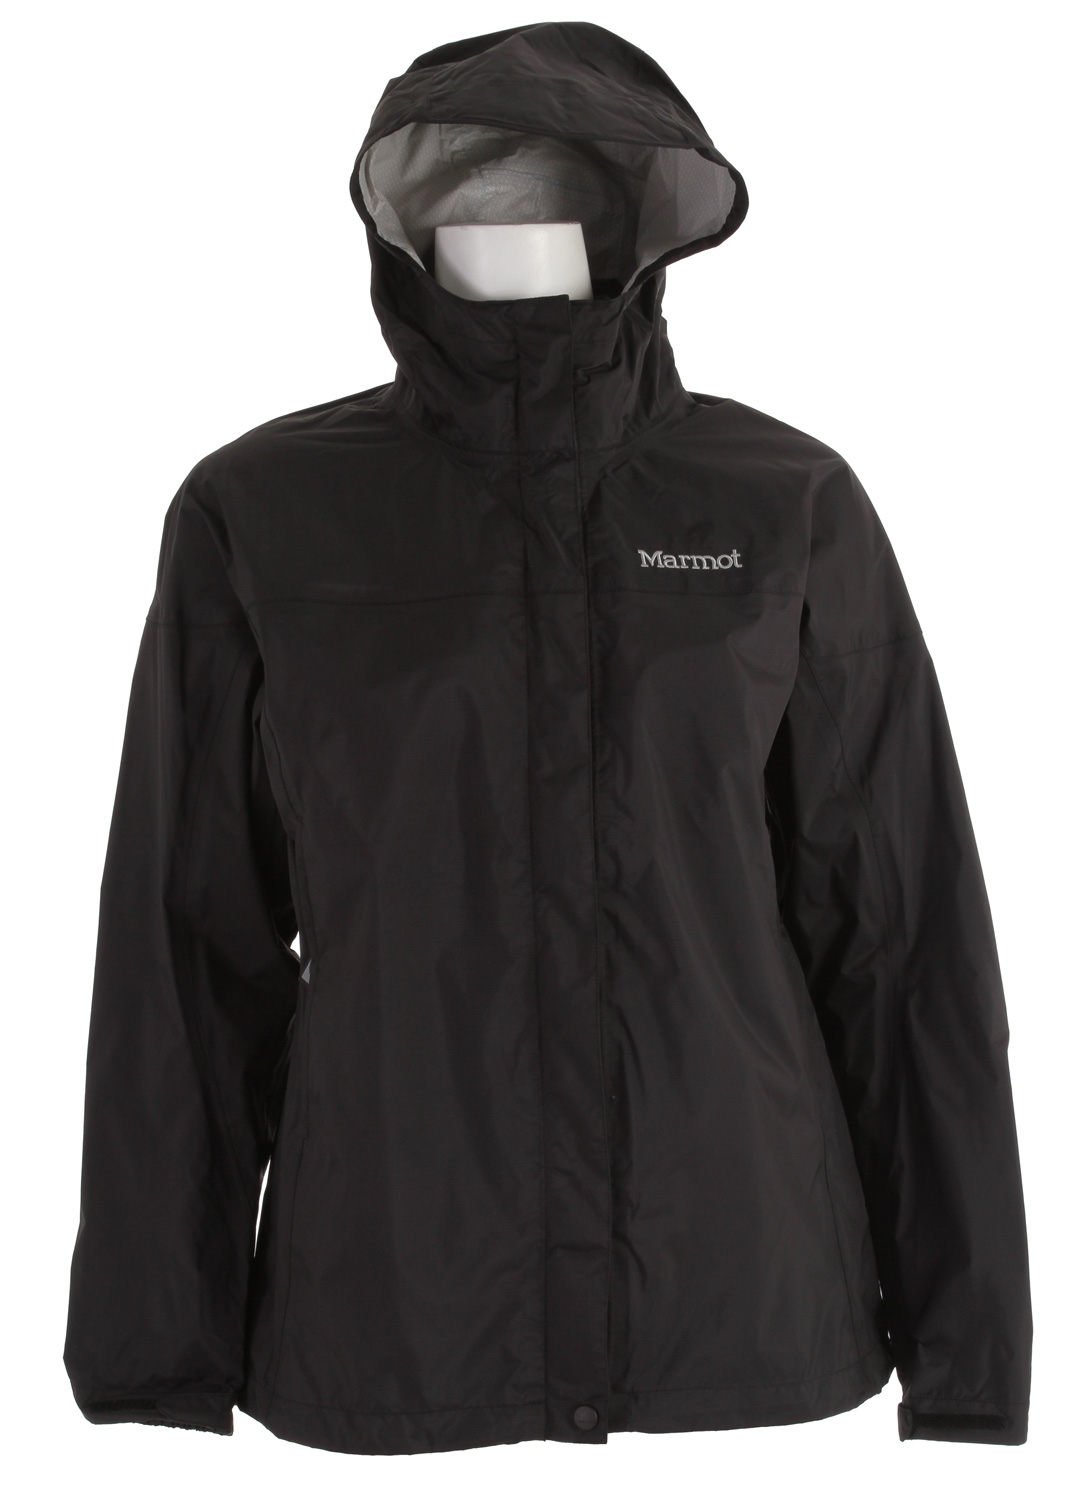 "Key Features of the Marmot PreCip Jacket: Weight 0lb 11.4oz (323g) Materials PreCip 2.5 100% Nylon Ripstop 2.7oz/yd PreCip Dry Touch Technology, Waterproof/Breathable 100% Seam Taped Full Visibility Roll-Up Hood with Integral Collar PitZips Pack Pockets Double Storm Flap Over Zipper with Snap/Velcro Closure Elastic Draw Cord Hem DriClime Lined Chin Guard Angel-Wing Movement 27"" Center Back Length for Size Medium - $73.95"